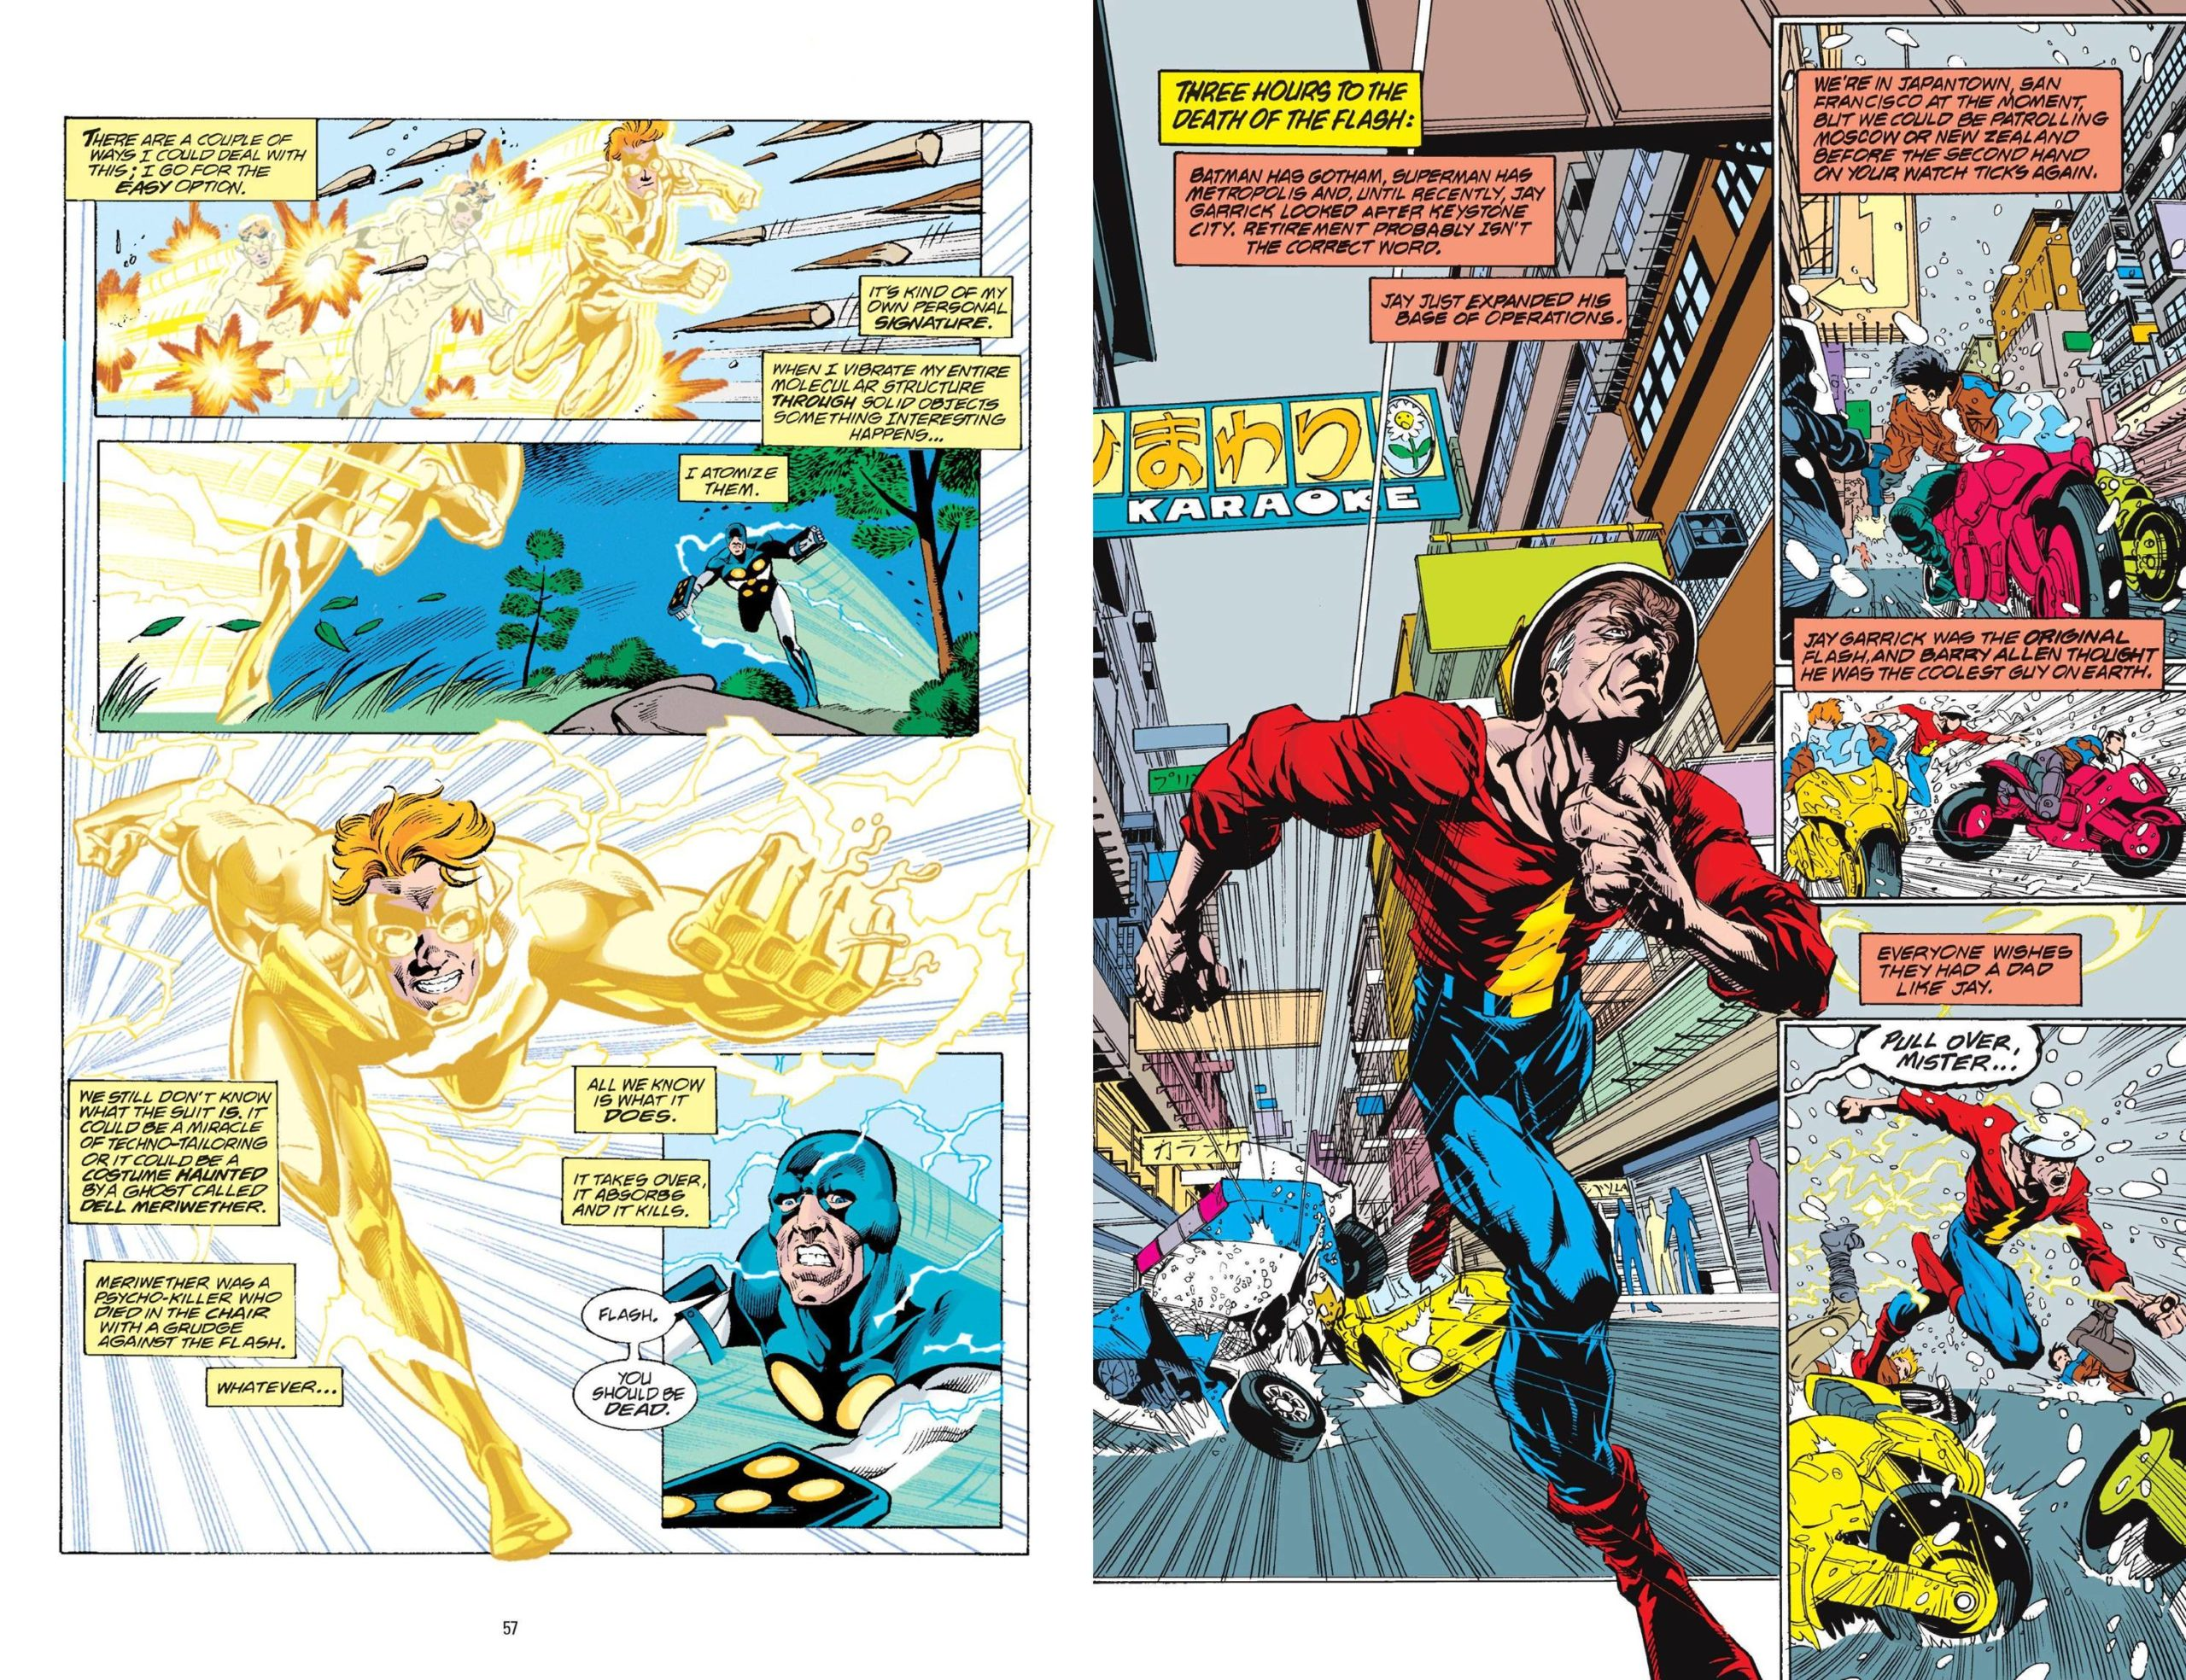 The Flash by Grant Morrison and Mark Millar review